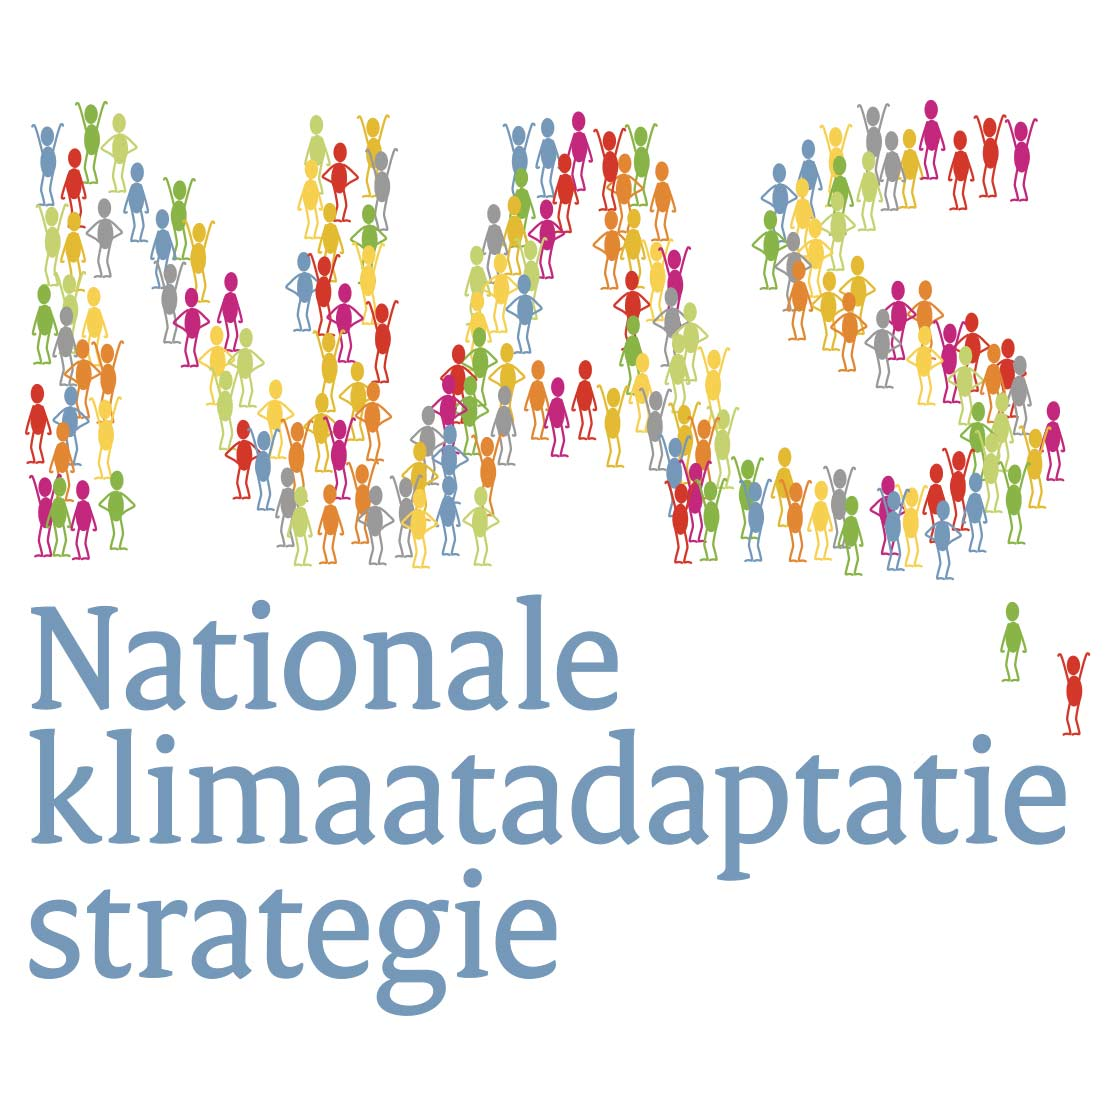 NAS Nationale klimaatadaptatie strategie